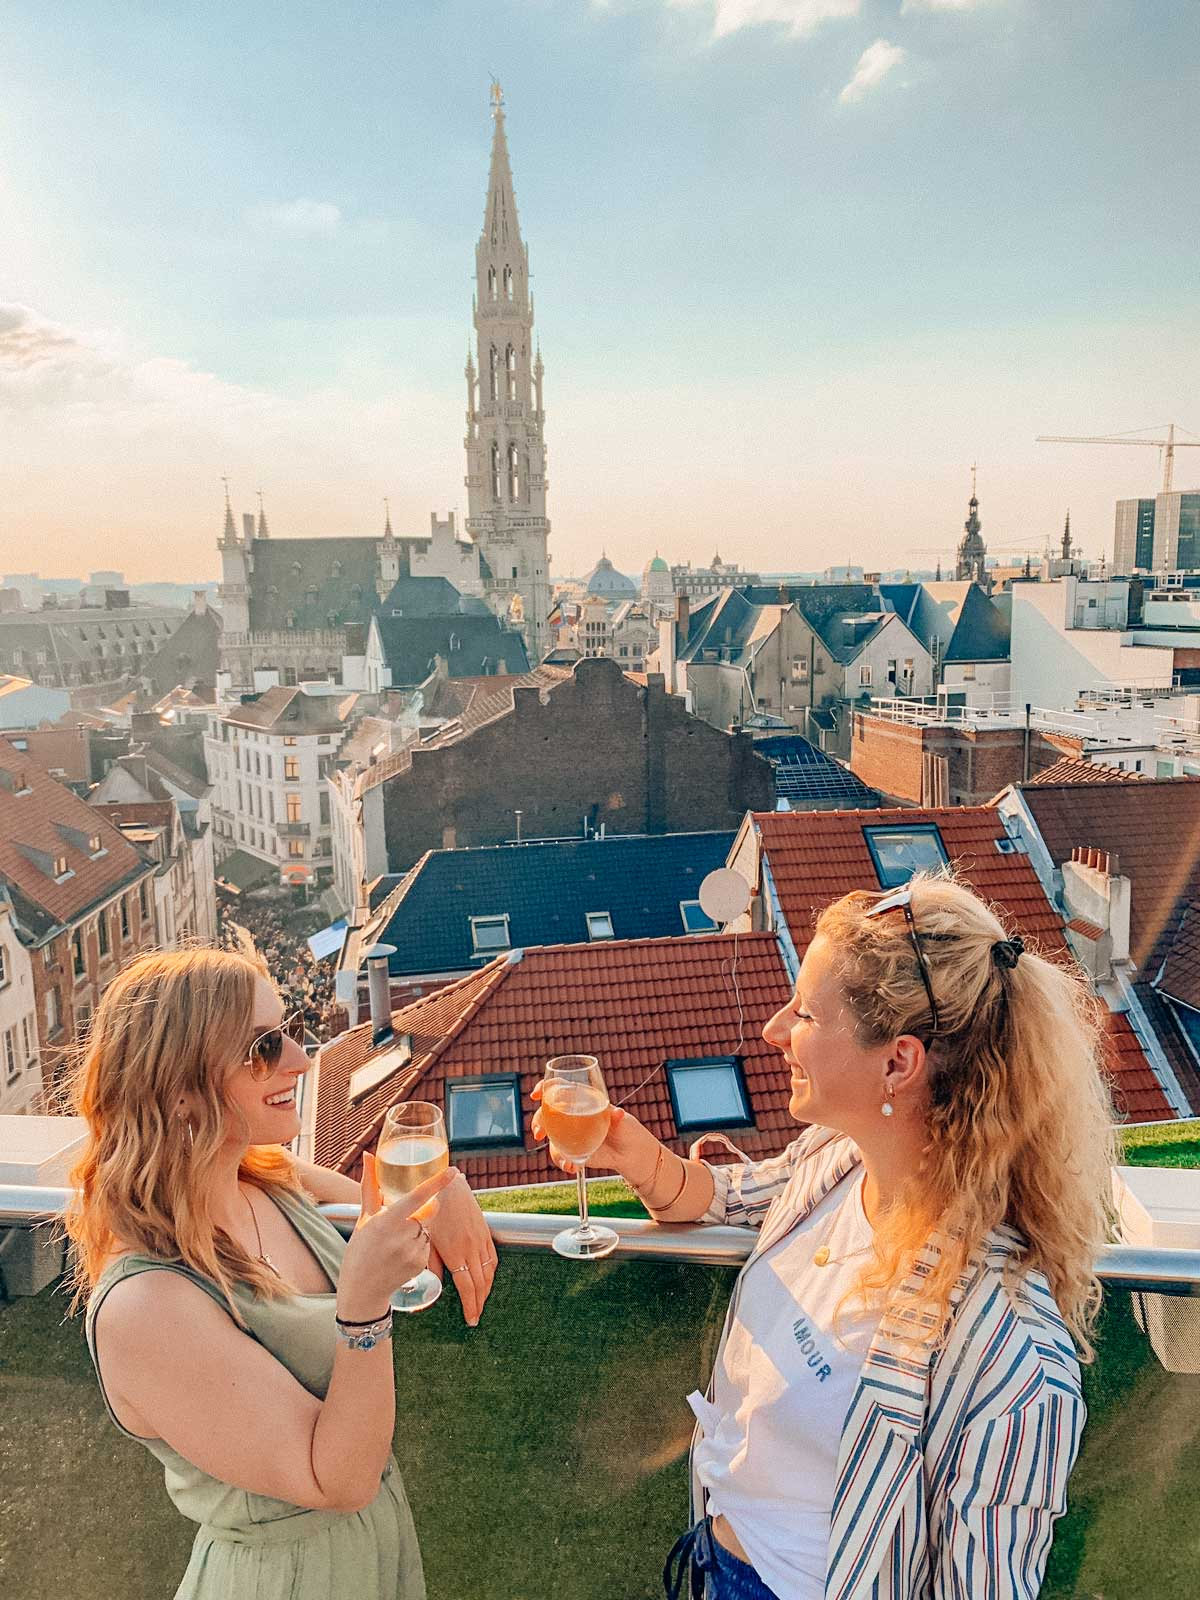 Weekend in Brussels, have a rooftop drink